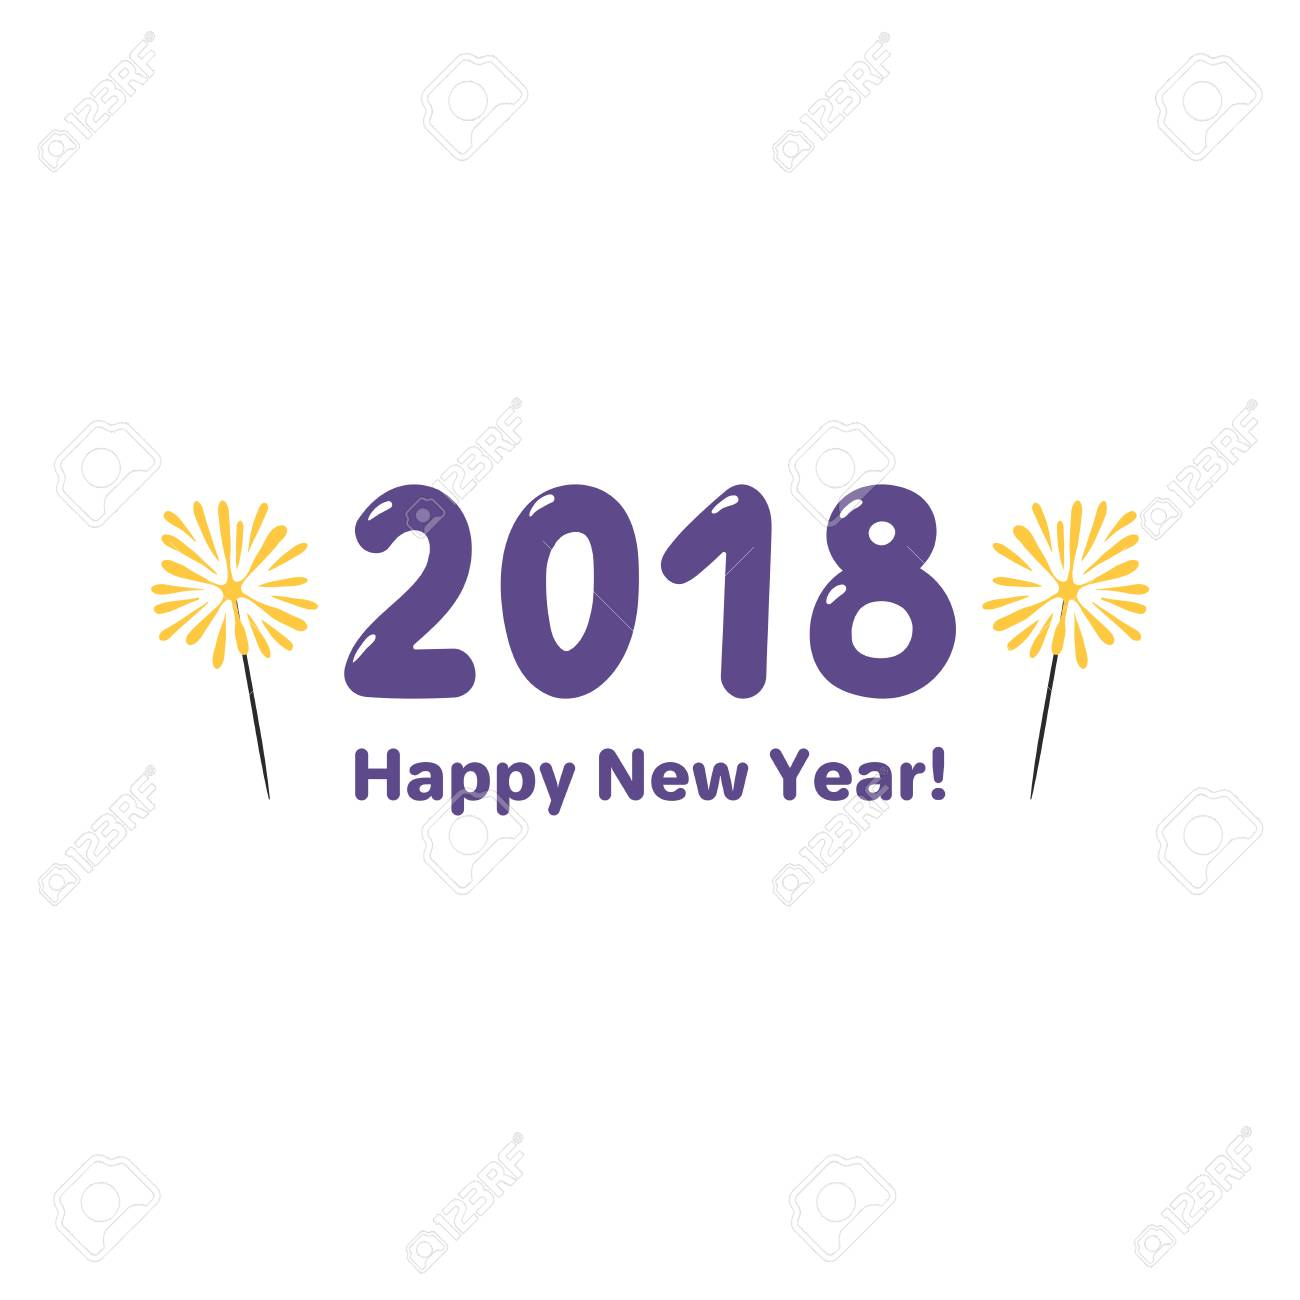 Hand Drawn Happy New Year 2018 Greeting Card Banner Template